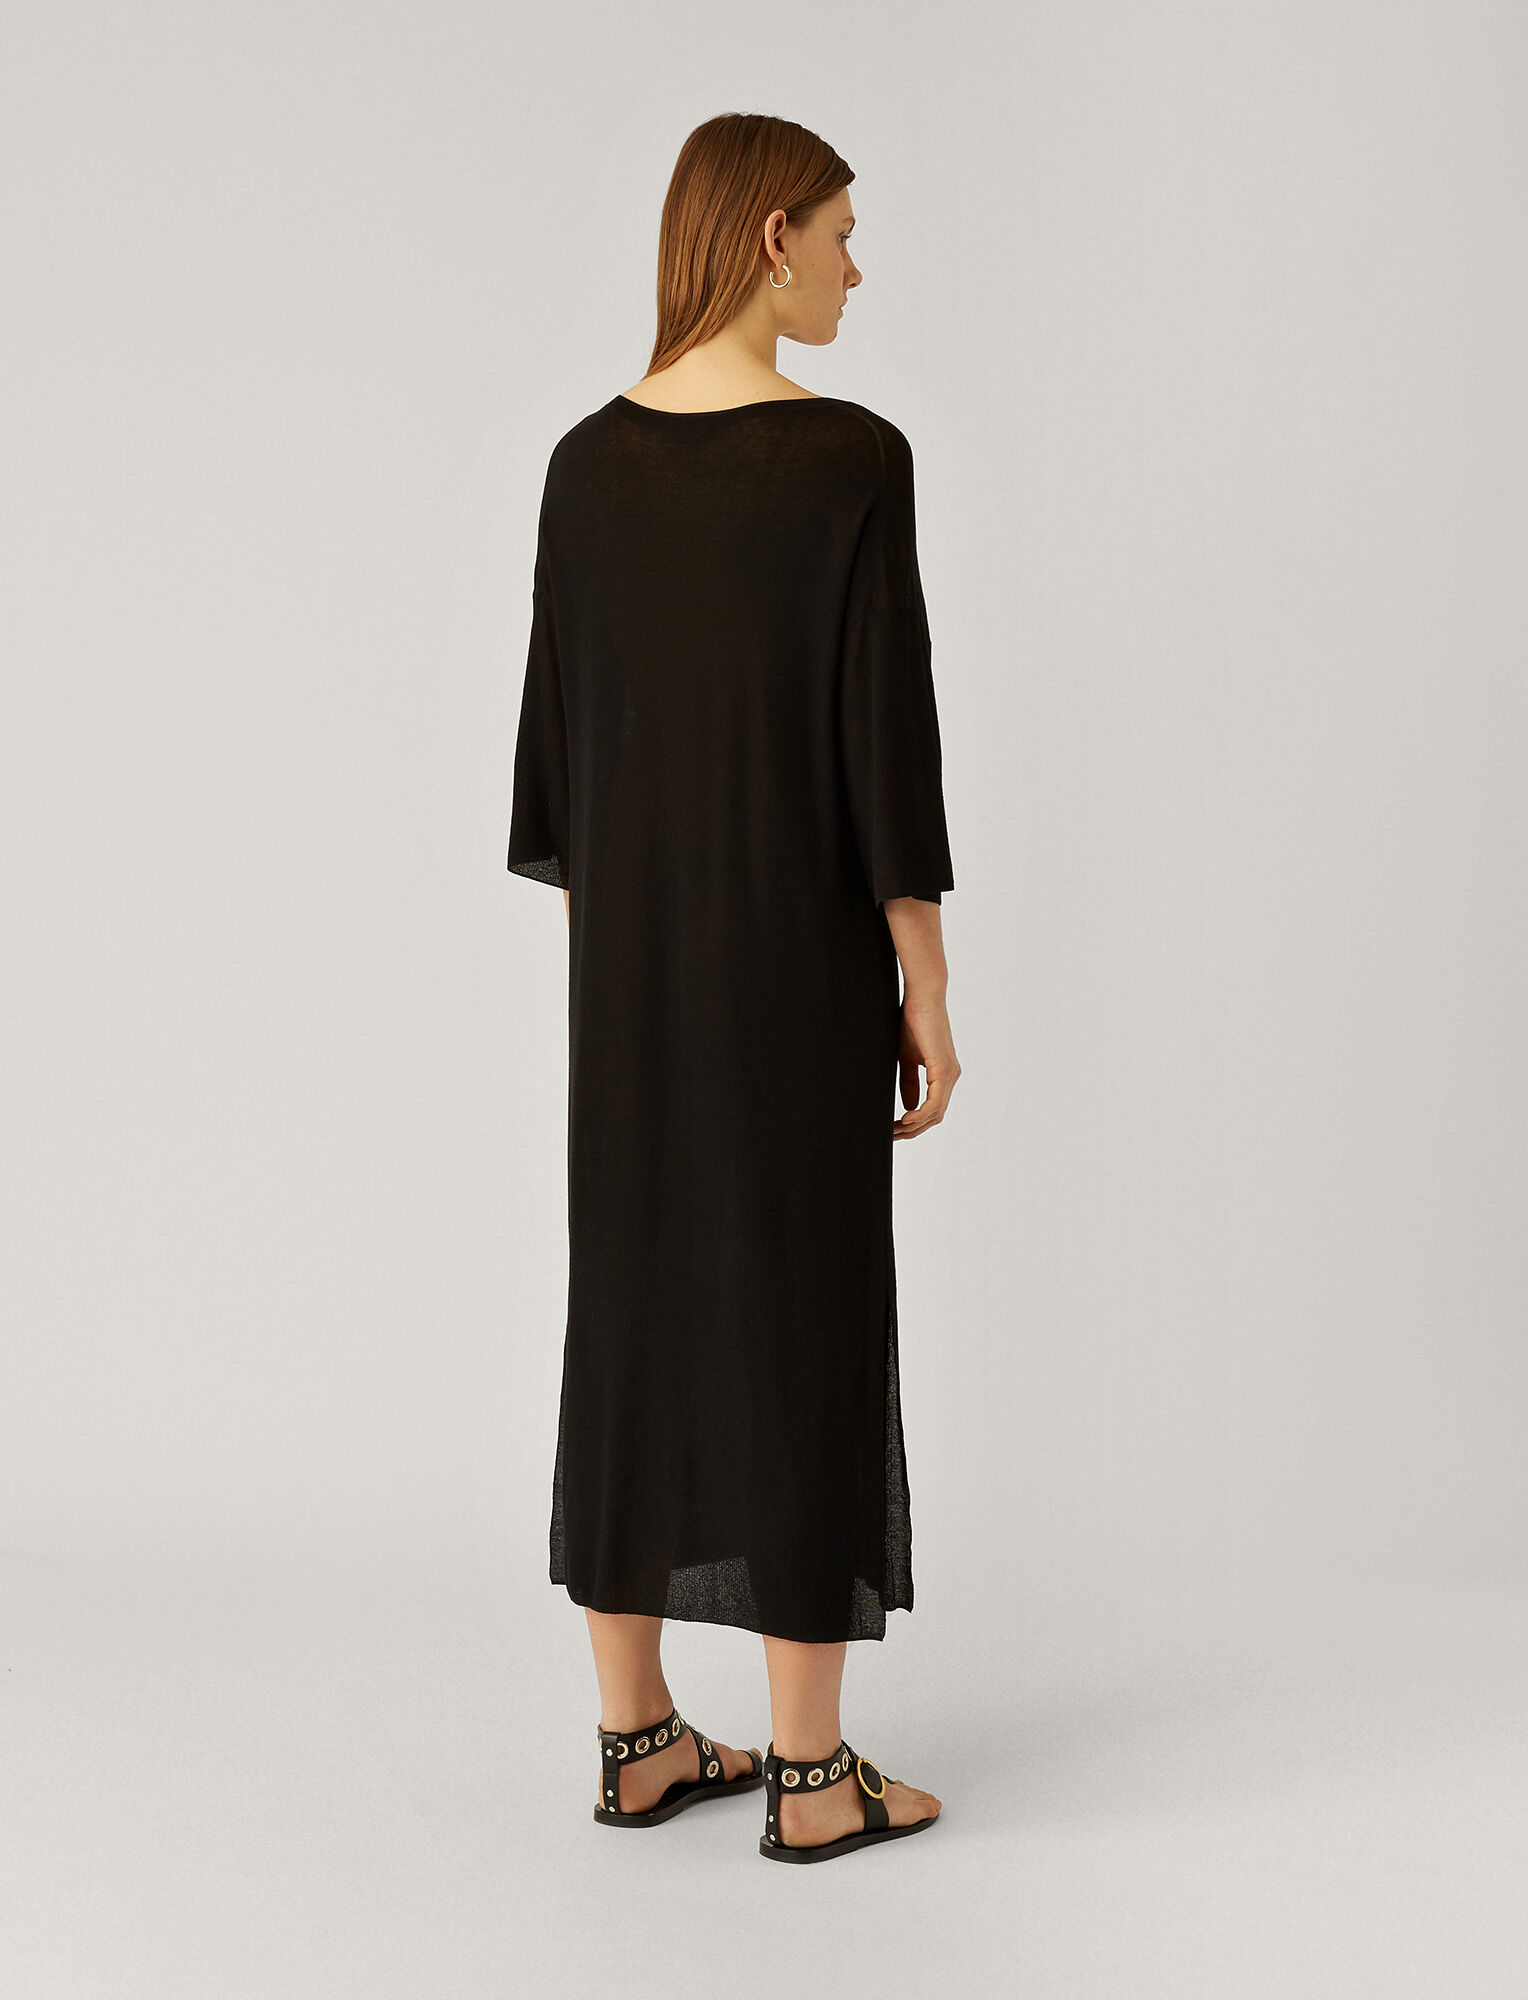 Joseph, Darline Sheer Cotton Dress, in BLACK